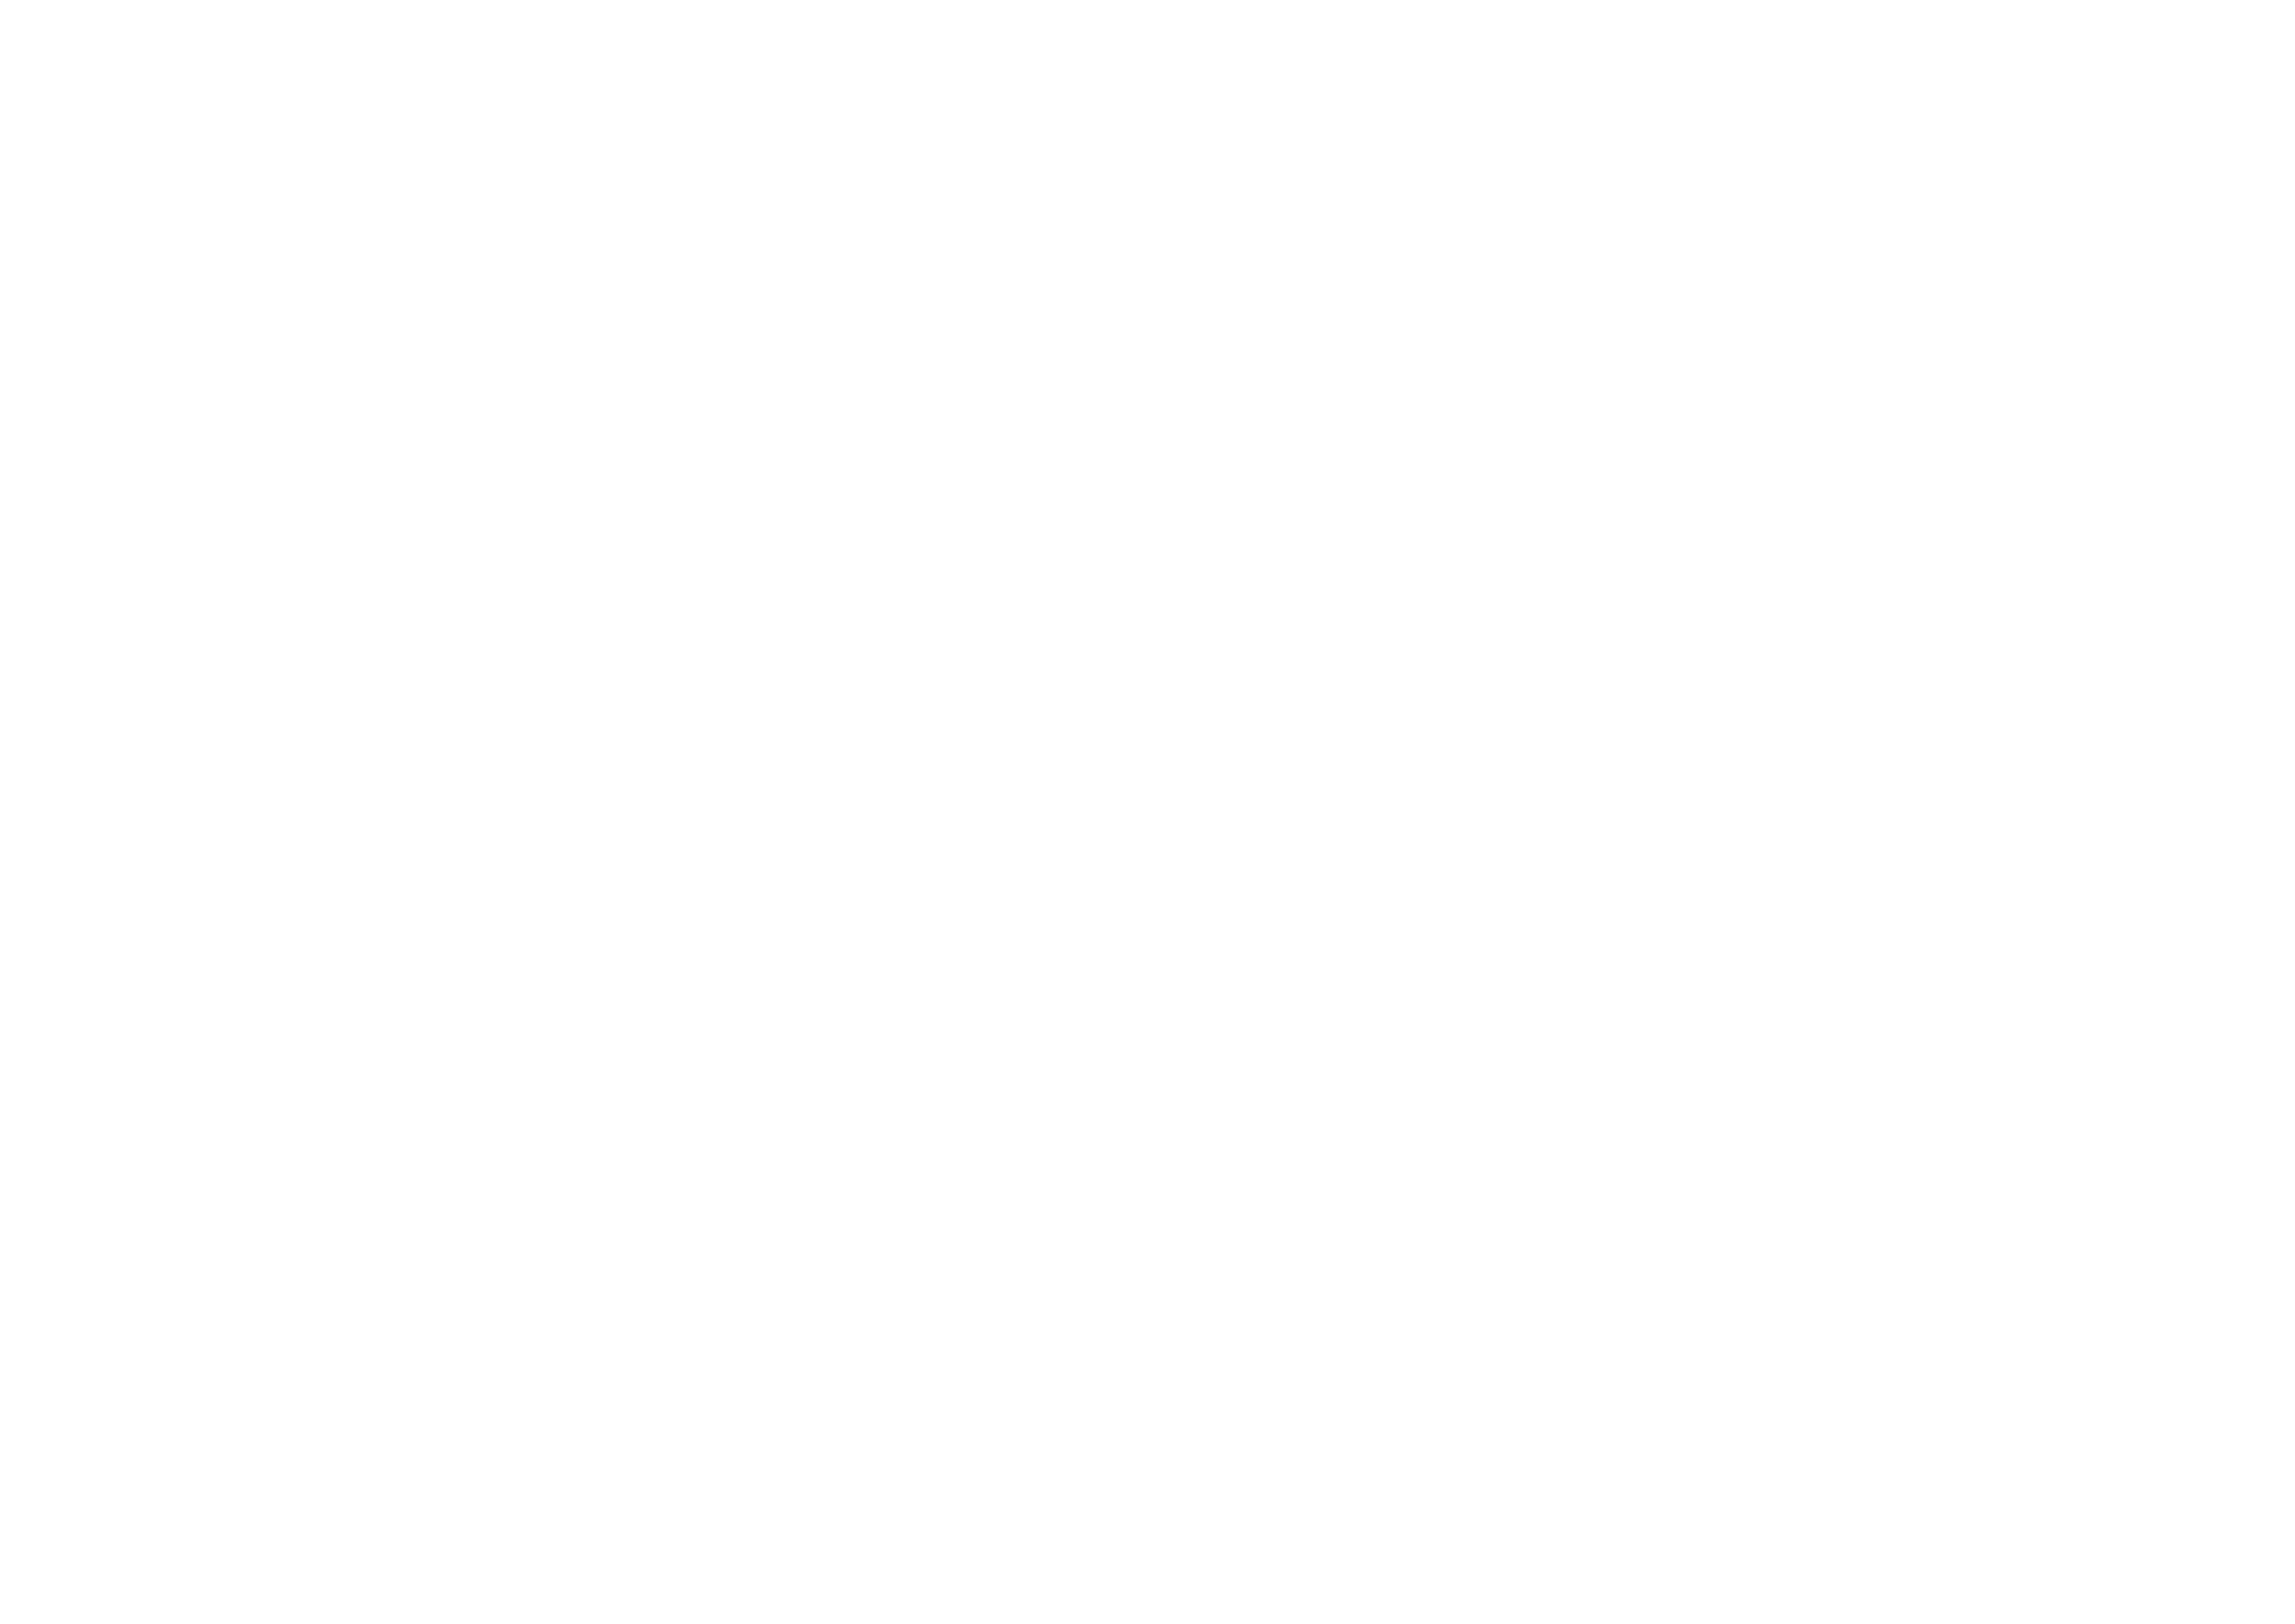 Aphrodite Productions